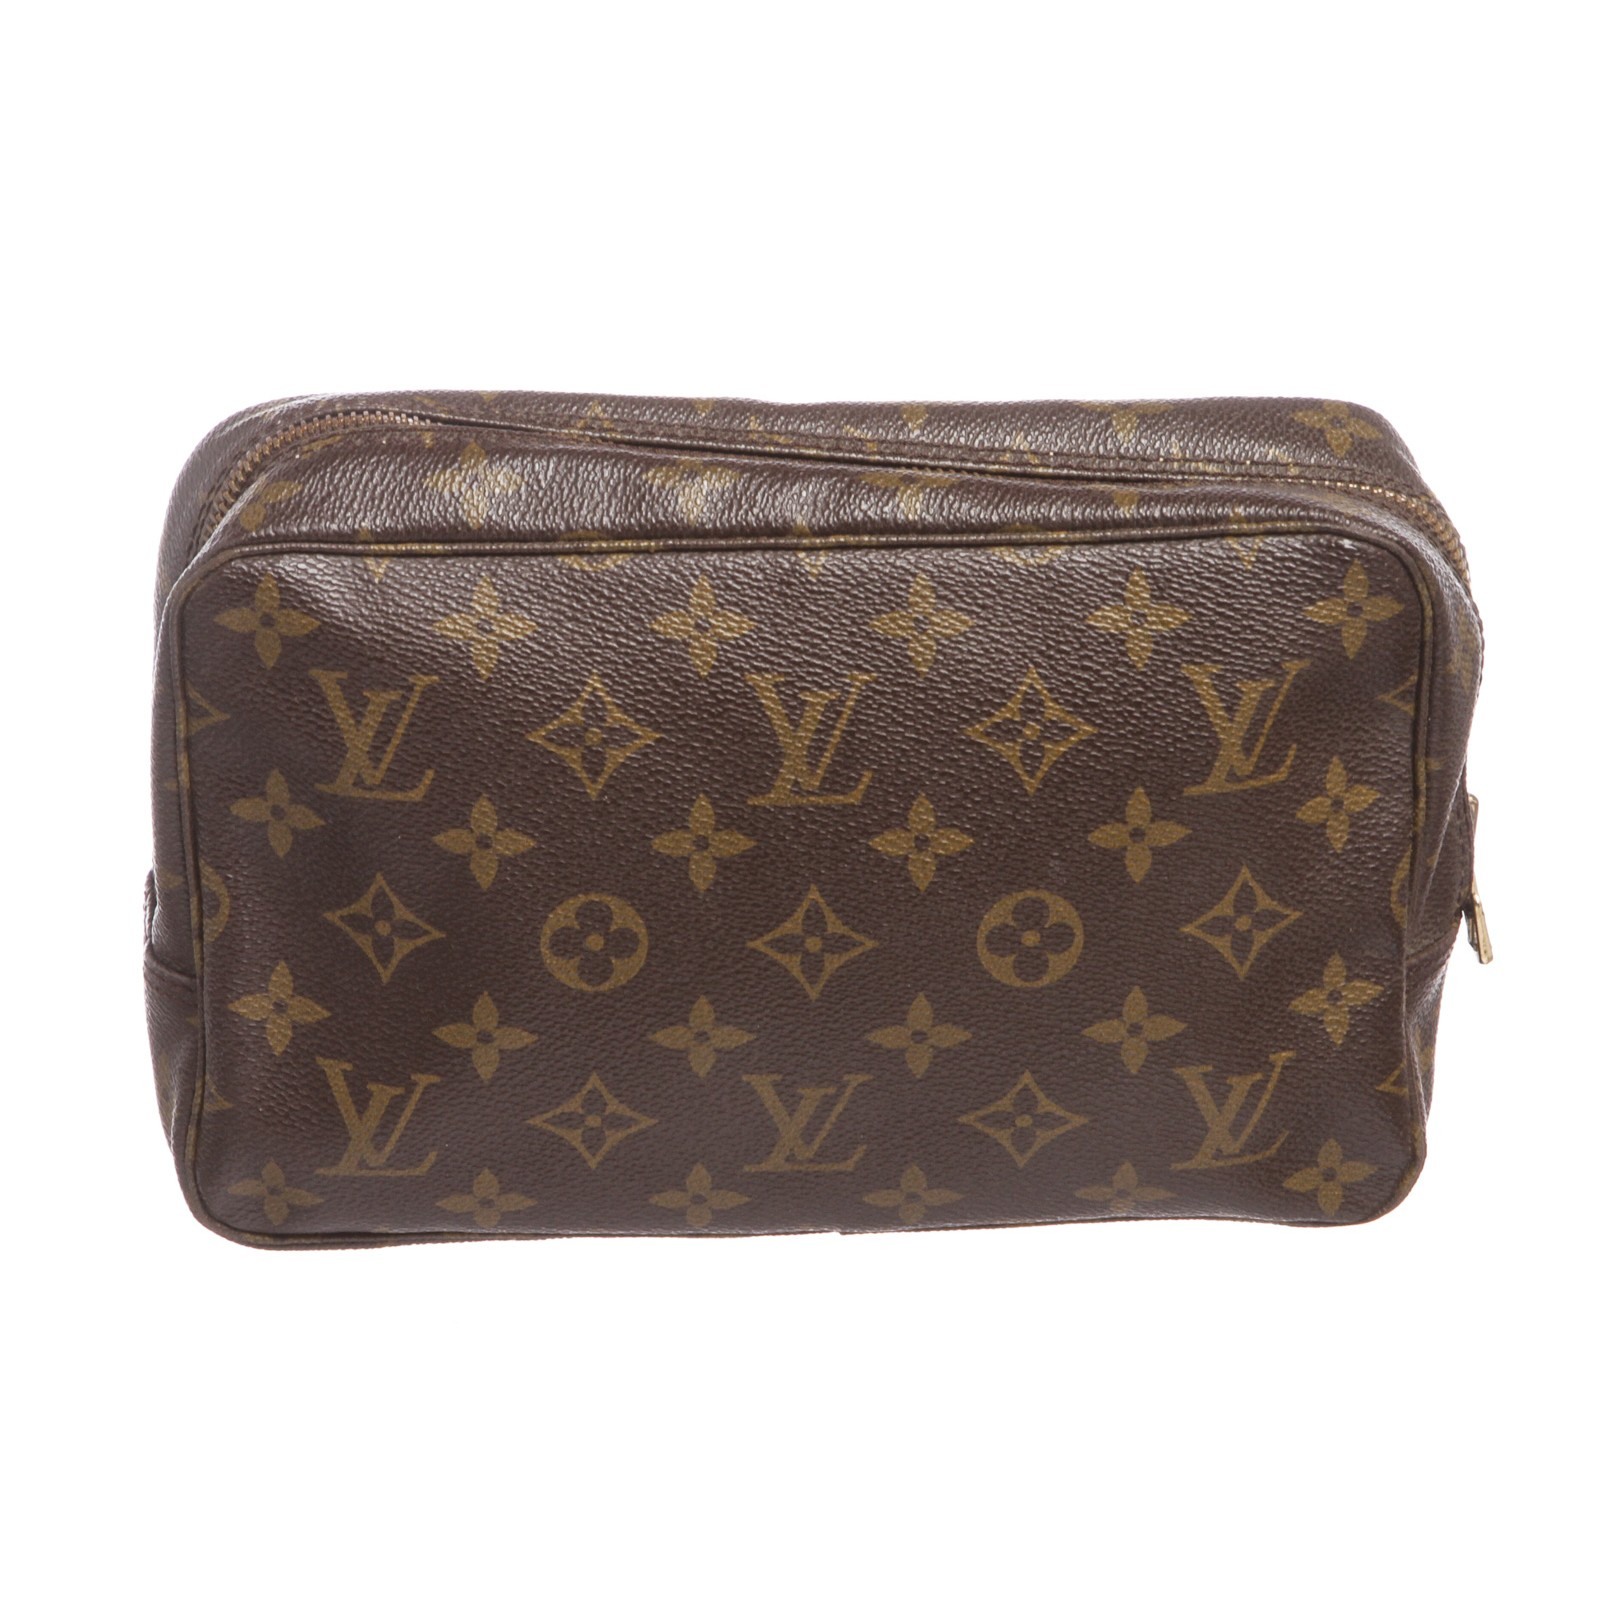 6b0f4e0b1b65 Shop for Louis Vuitton Monogram Canvas Leather Trousse 23 Toiletry ...